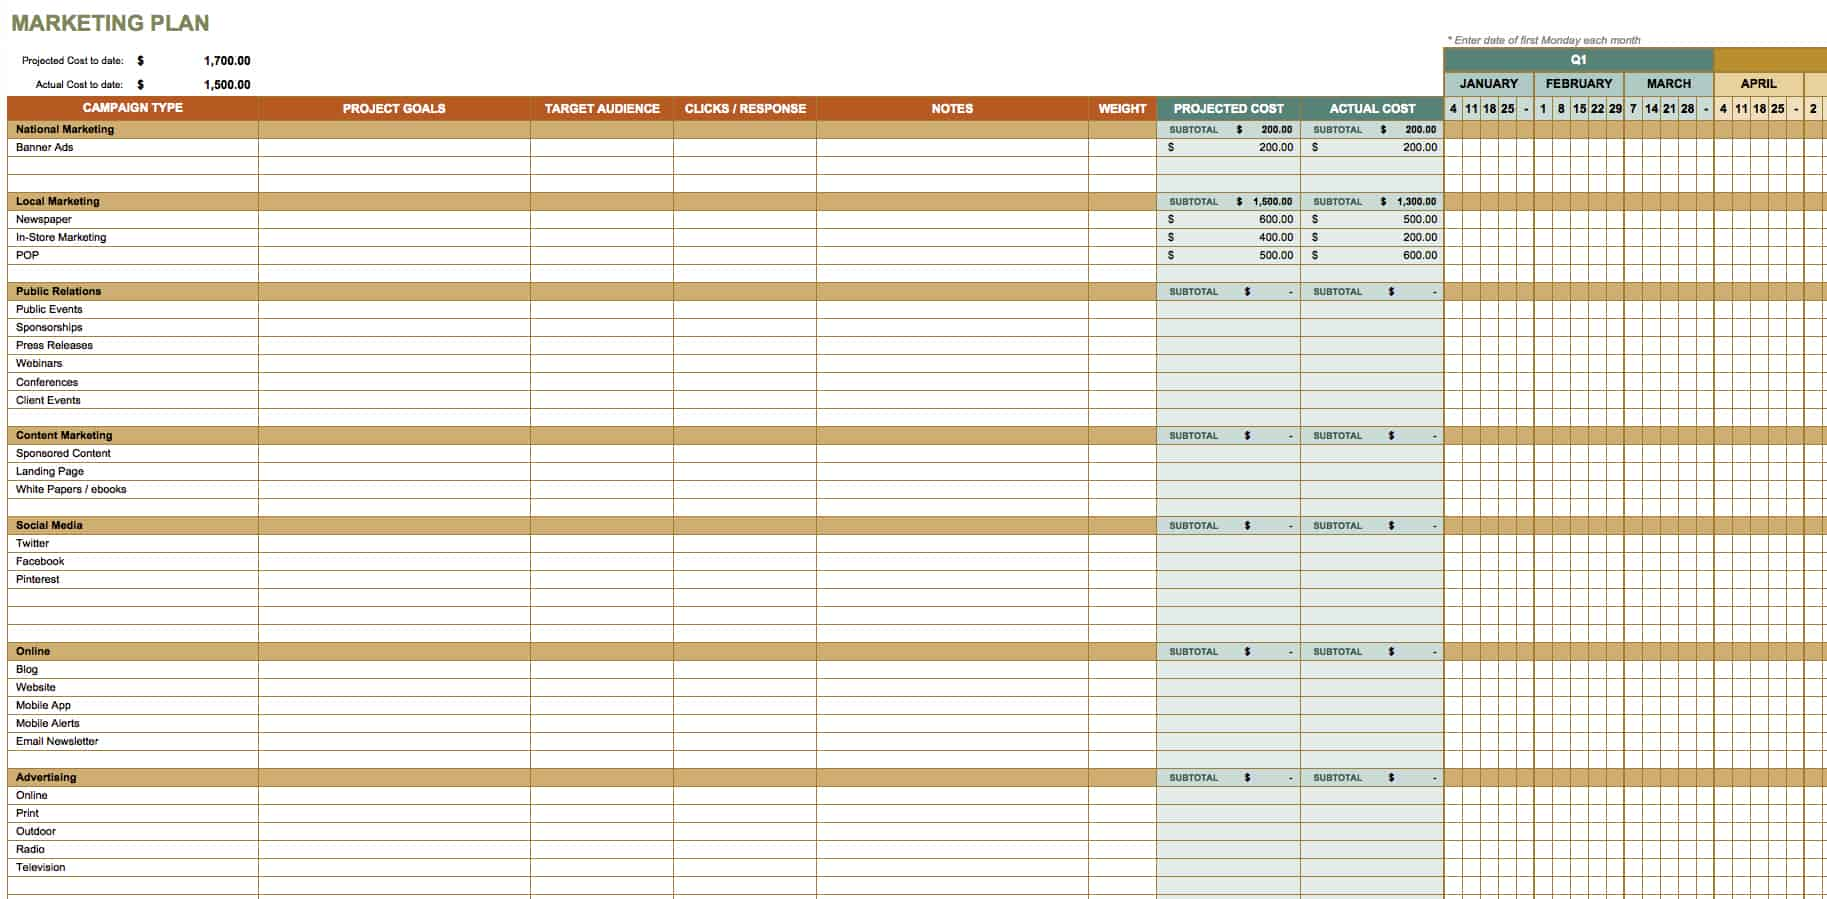 regulatory plan template - free marketing plan templates for excel smartsheet